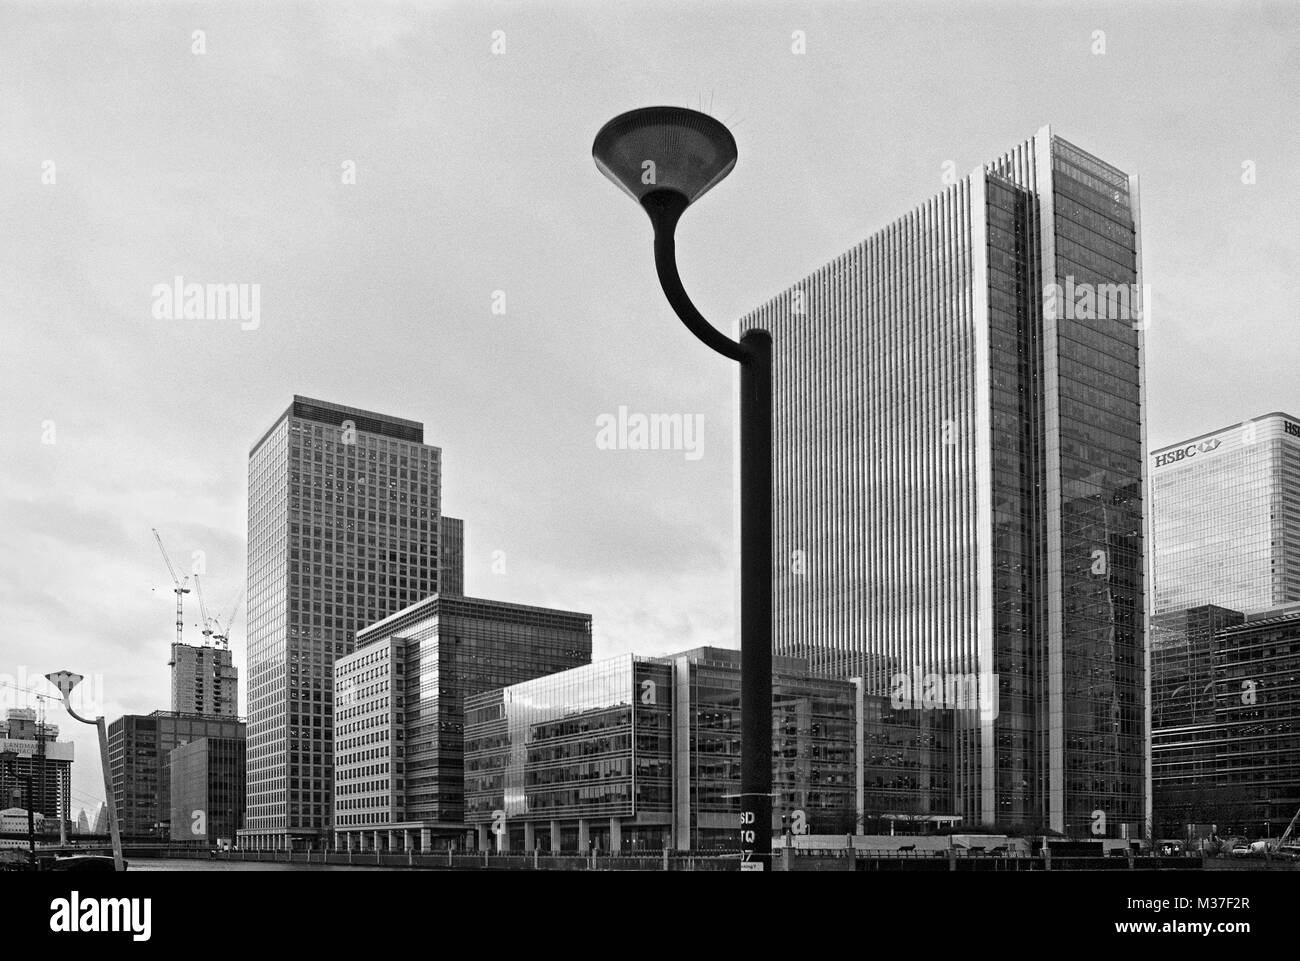 Office buildings on South Dock, Canary Wharf business district, East London UK - Stock Image